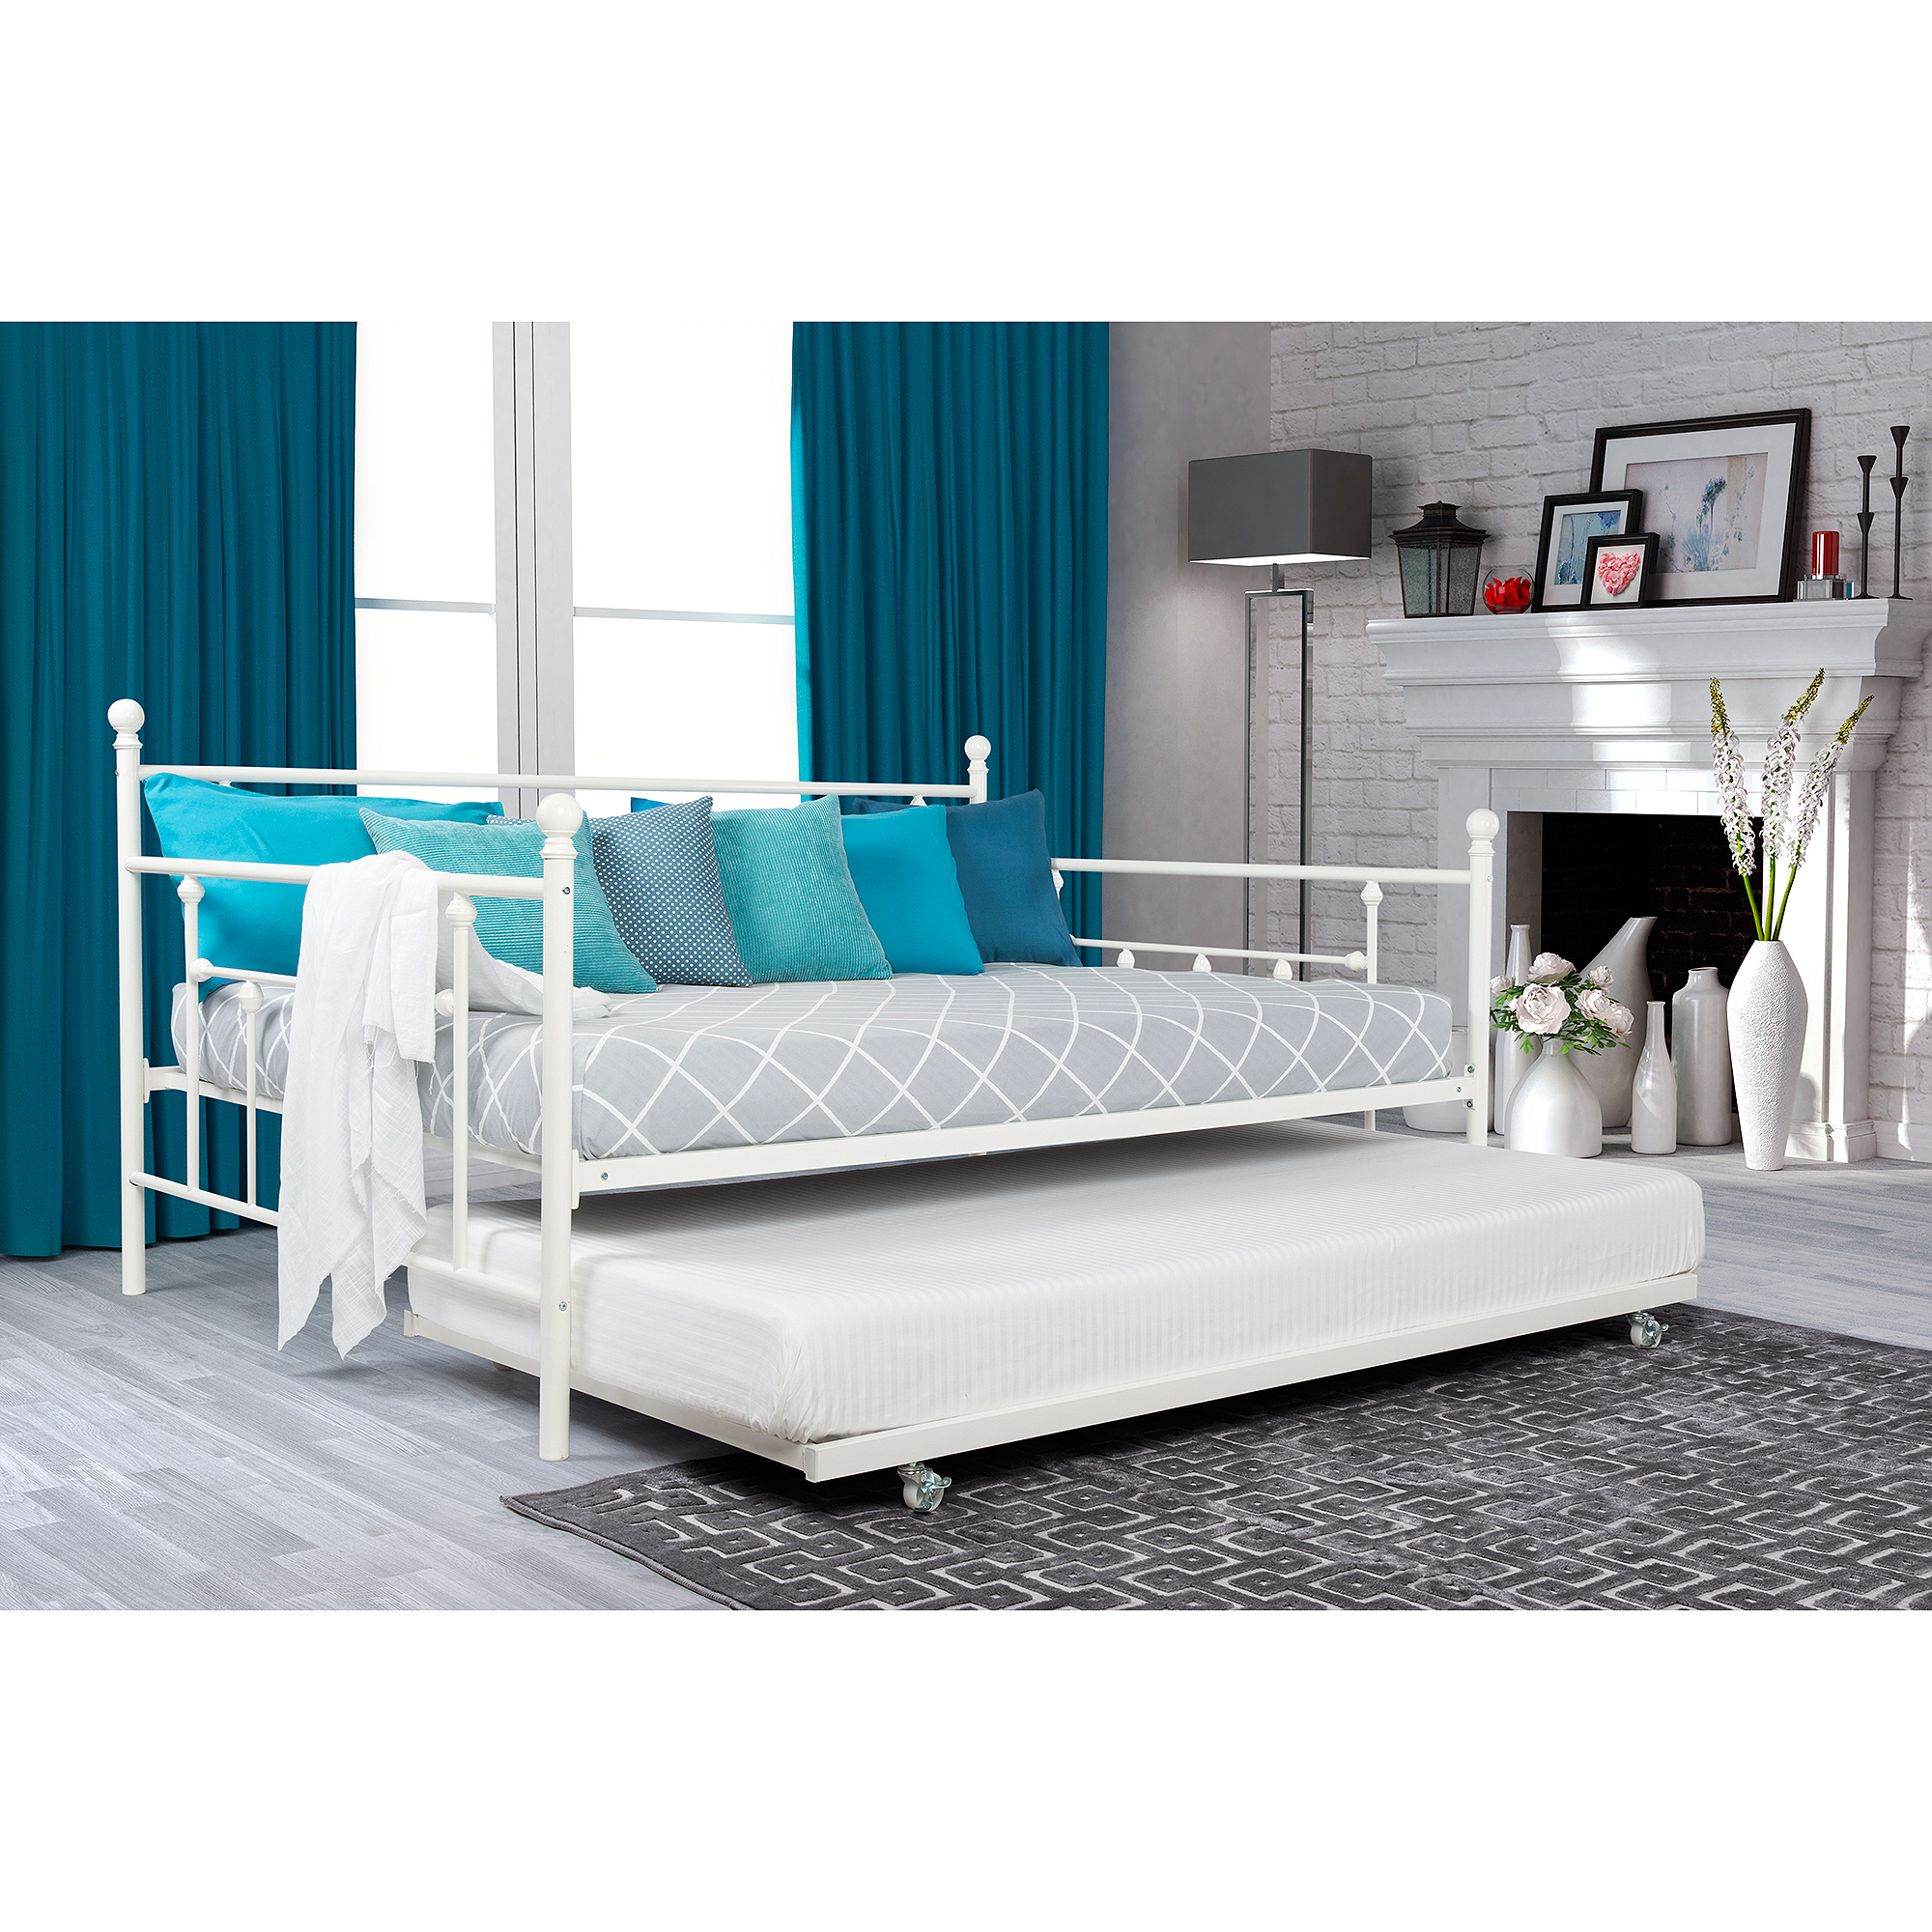 Trundle Daybed | White Metal Daybed | Full Size Daybed with Trundle